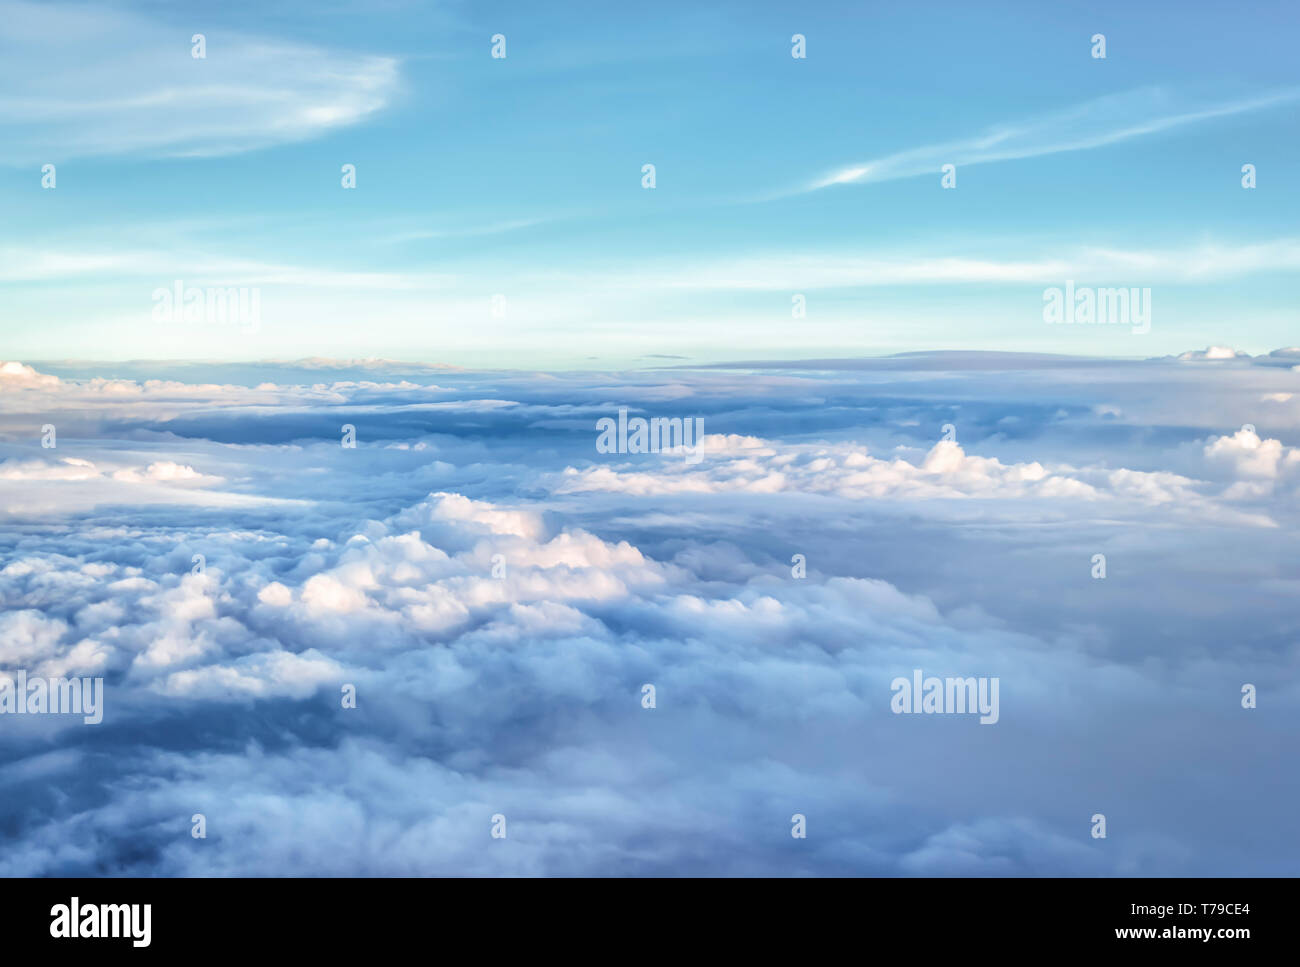 Aerial view of monsoon clouds over plains of India. Taken from a plane that was still climbing after taking off from IGI airport, New Delhi, India. - Stock Image